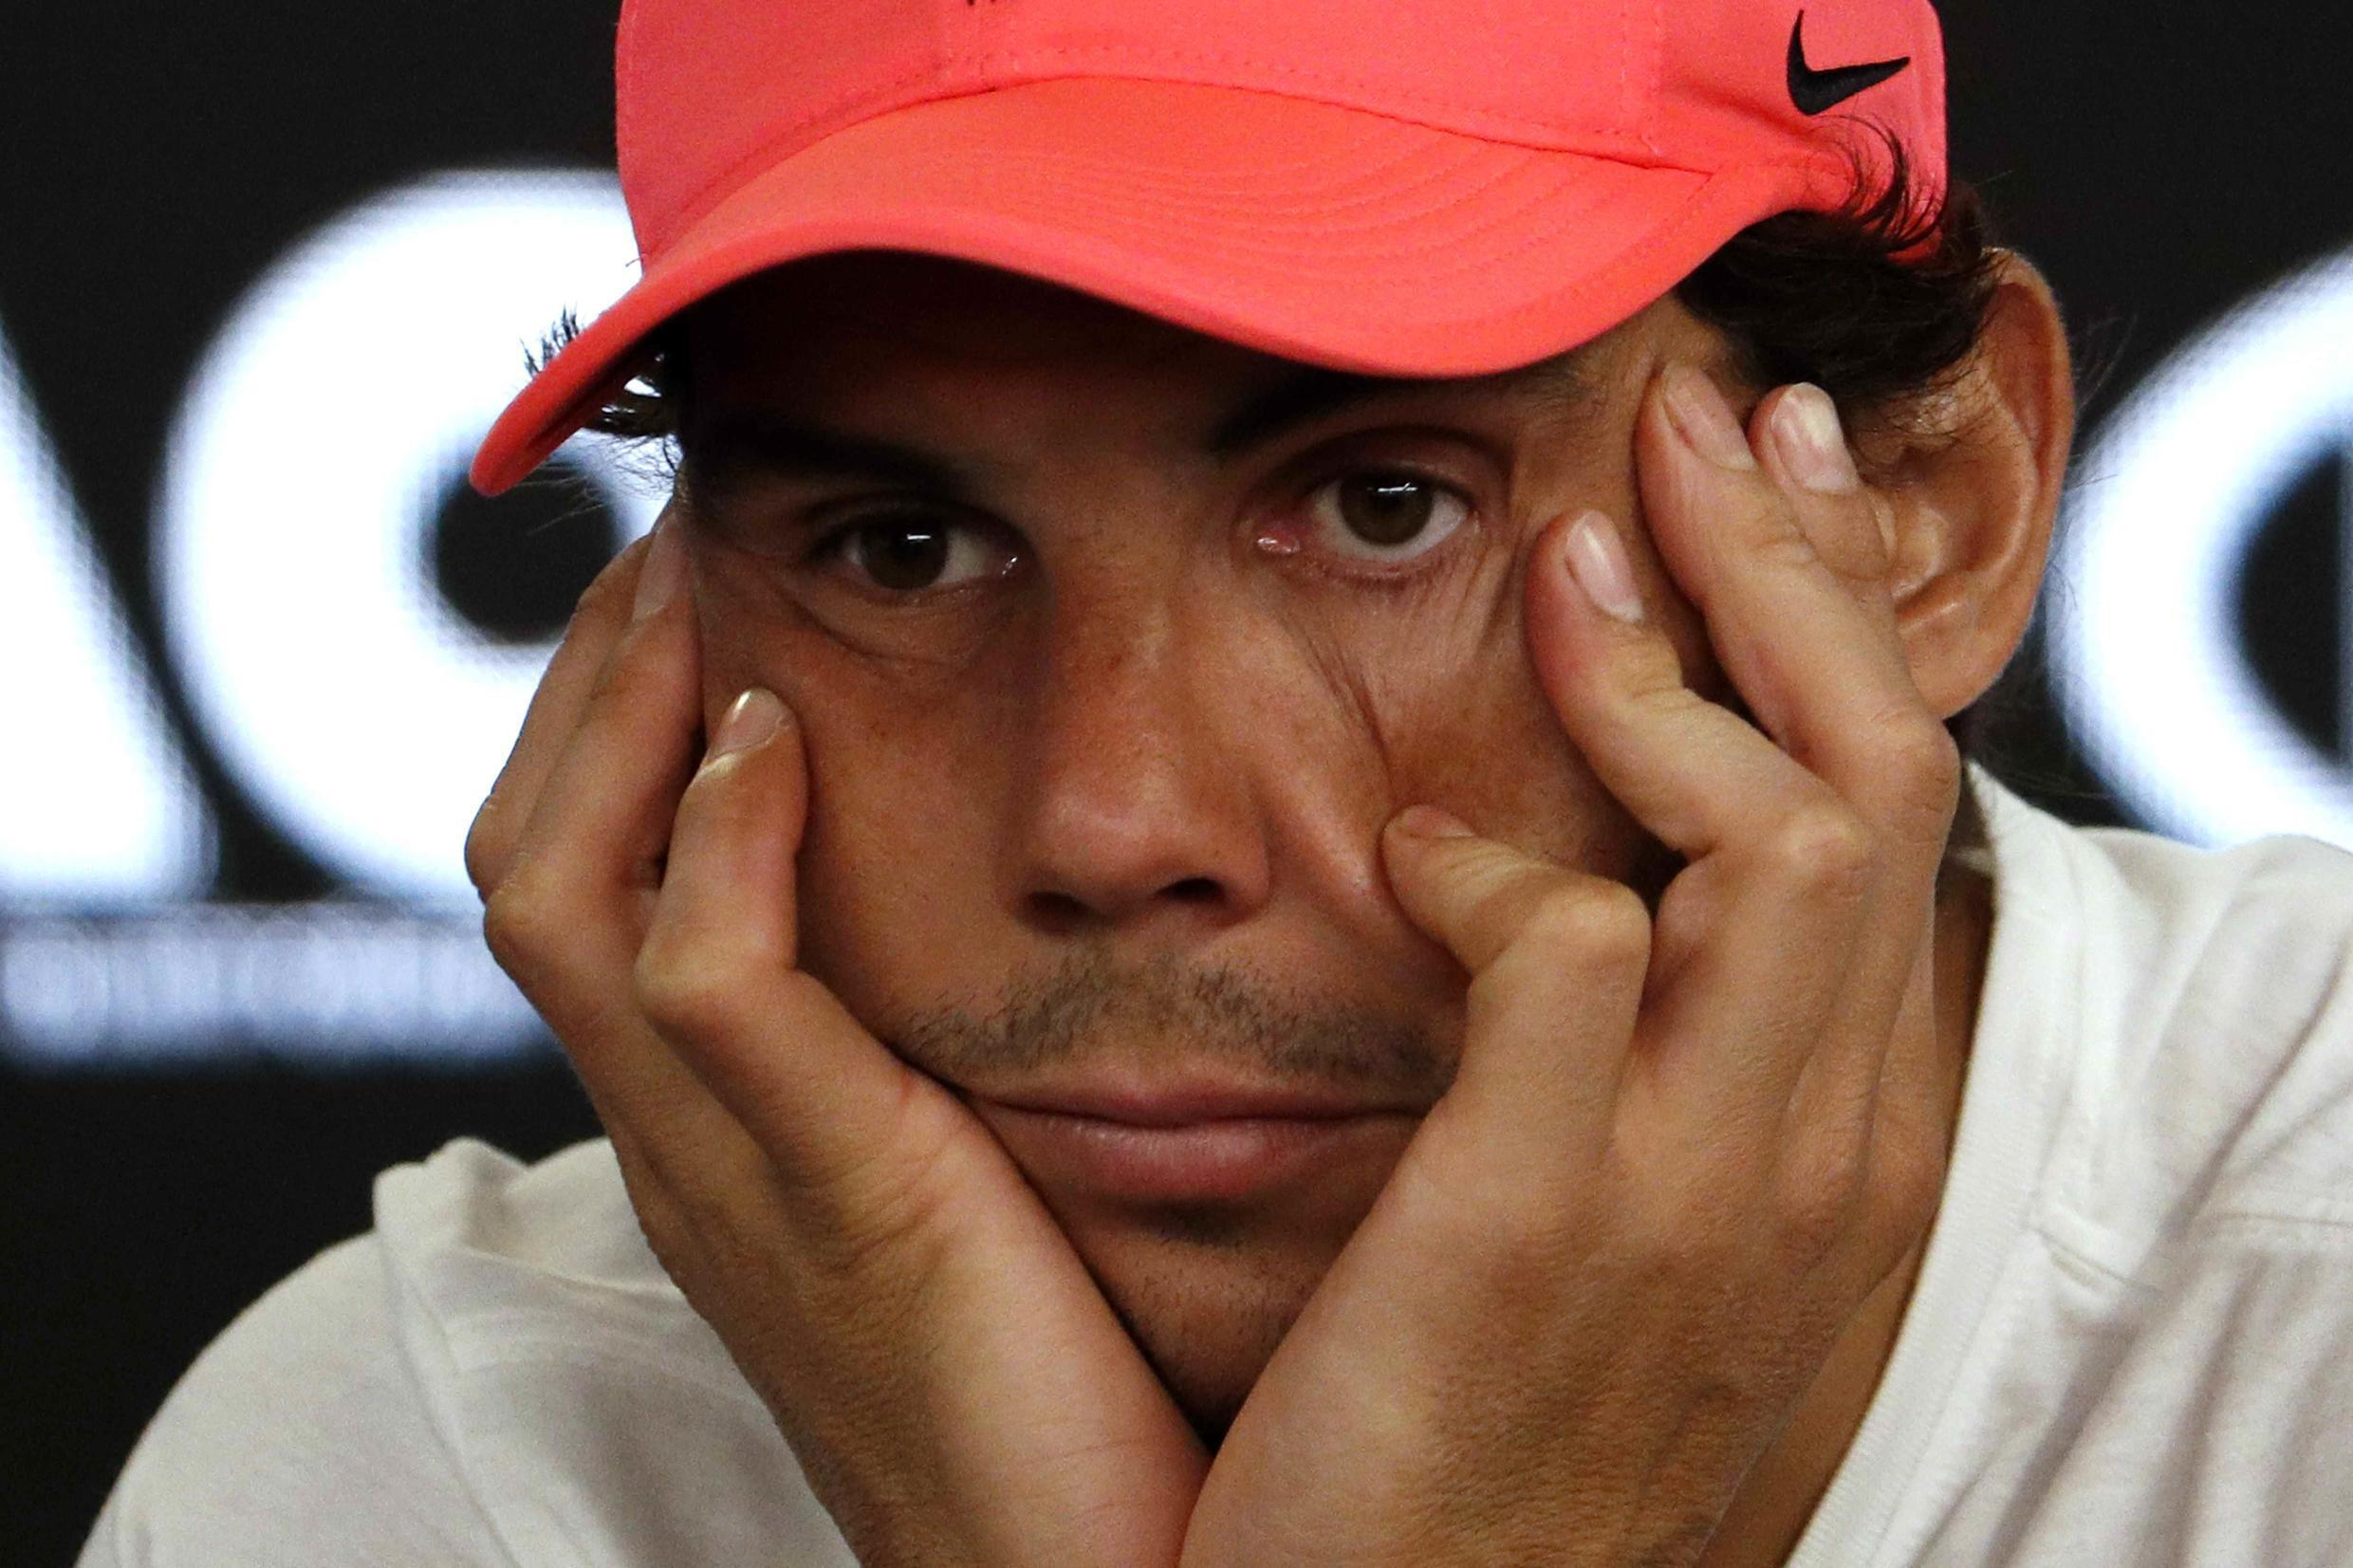 Tennis - Australian Open - Quarterfinals - Rod Laver Arena, Melbourne, Australia, January 23, 2018. Spain's Rafael Nadal during a press conference after retiring from his match due to injury against Croatia's Marin Cilic.